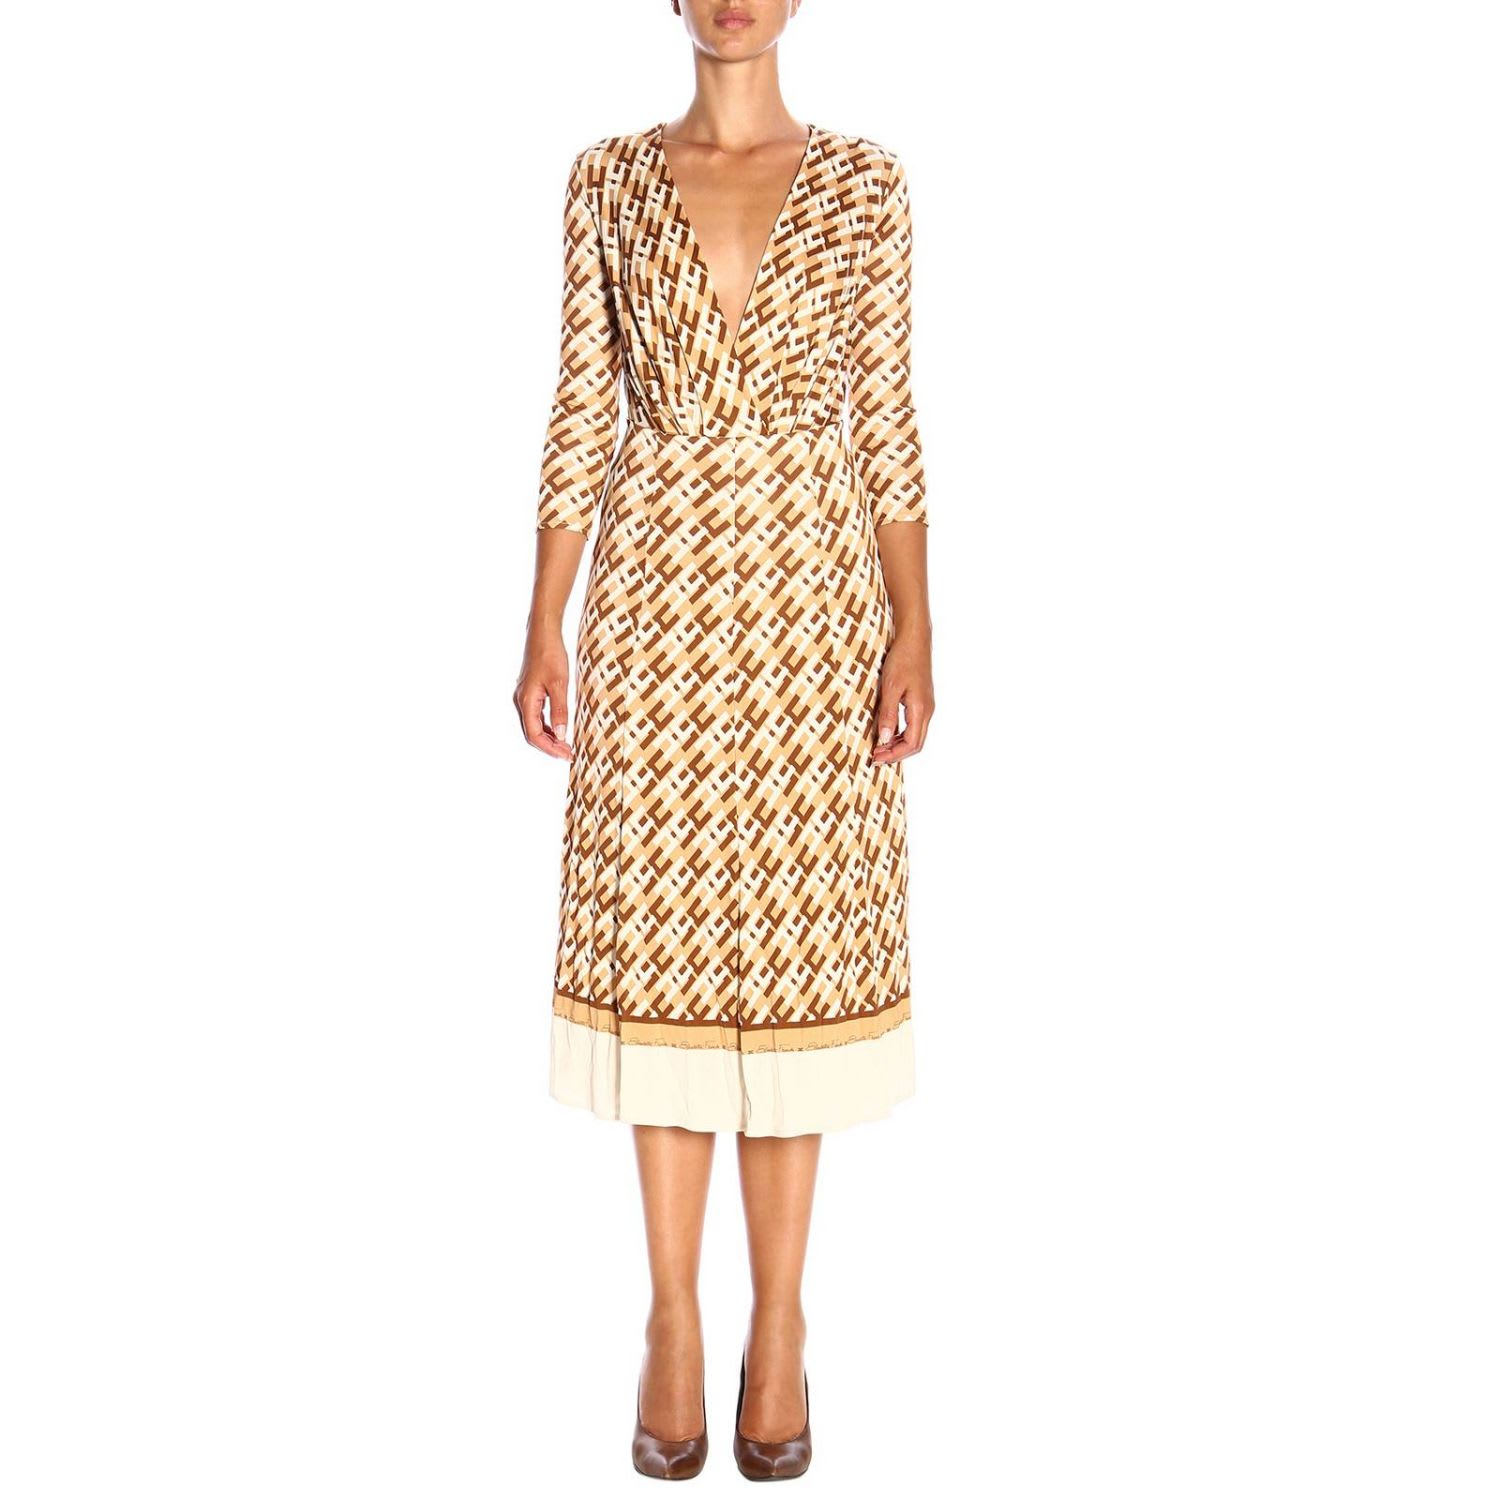 Elisabetta Franchi Dress Elisabetta Franchi Longuette Dress With Long Sleeves In Patterned Jersey